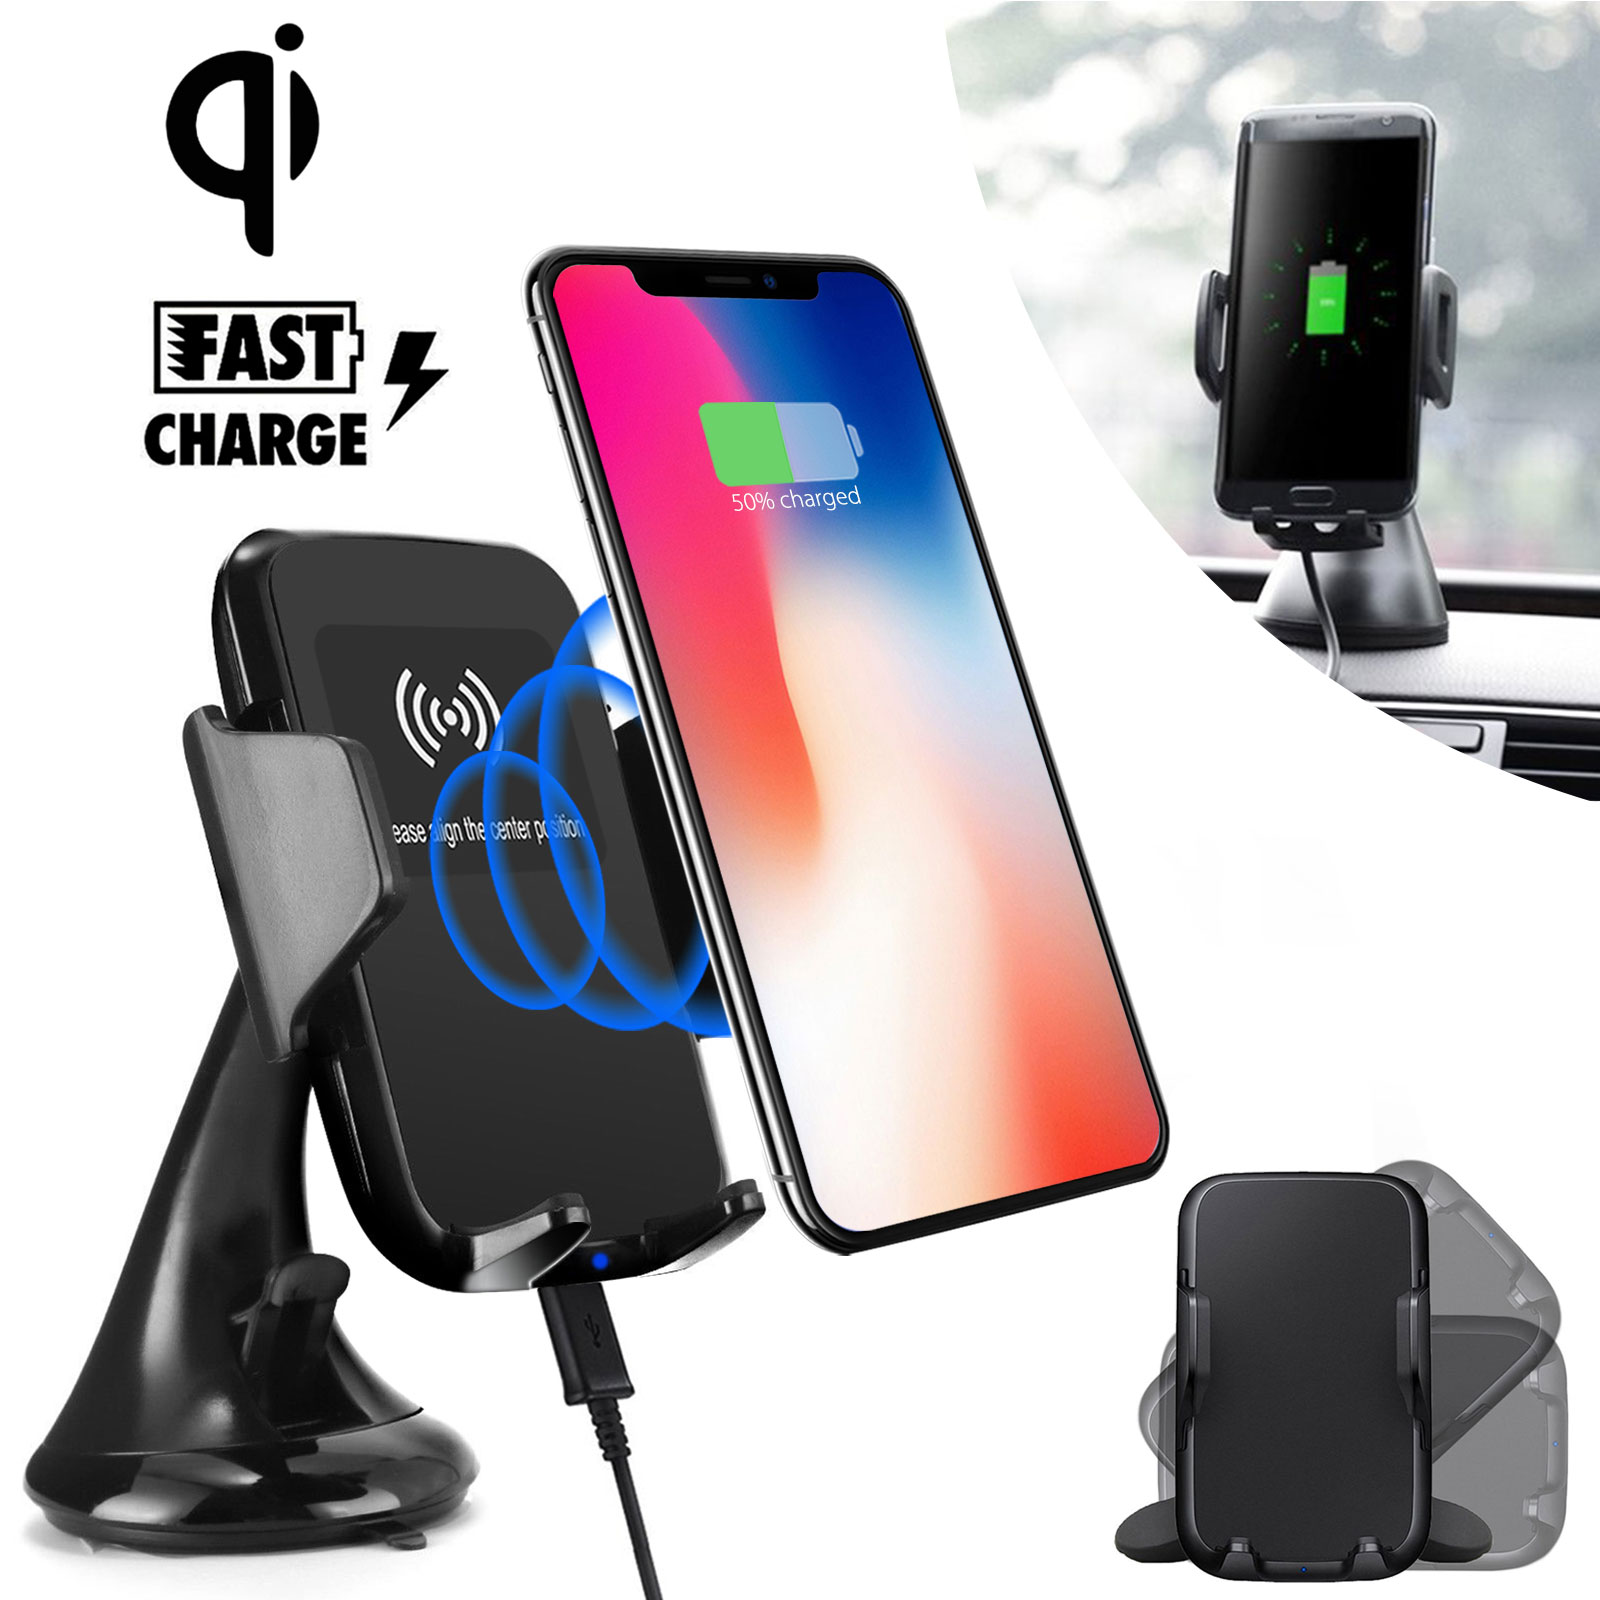 Fast Qi Wireless Car Charger Mount, Quick Charging Car Dash Board Wind Sheild Phone Holder for Samsung Galaxy Note 8 S9/S8/S8 Plus/S7 Edge/S7, iPhone X/8 Plus and more